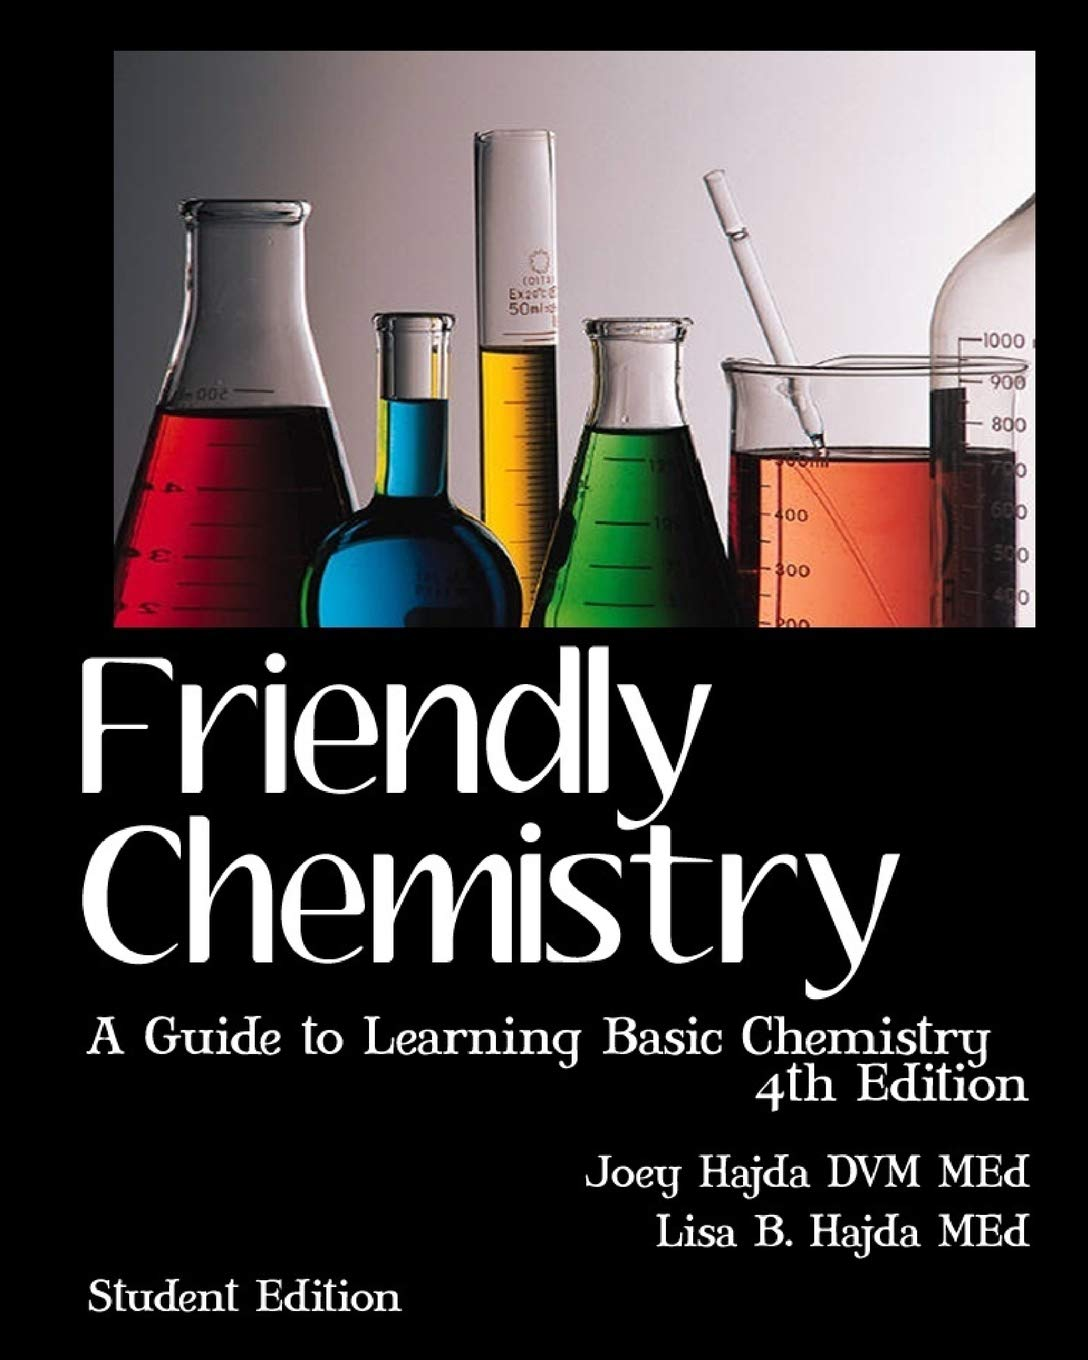 Image OfFriendly Chemistry Student Edition: A Guide To Learning Basic Chemistry